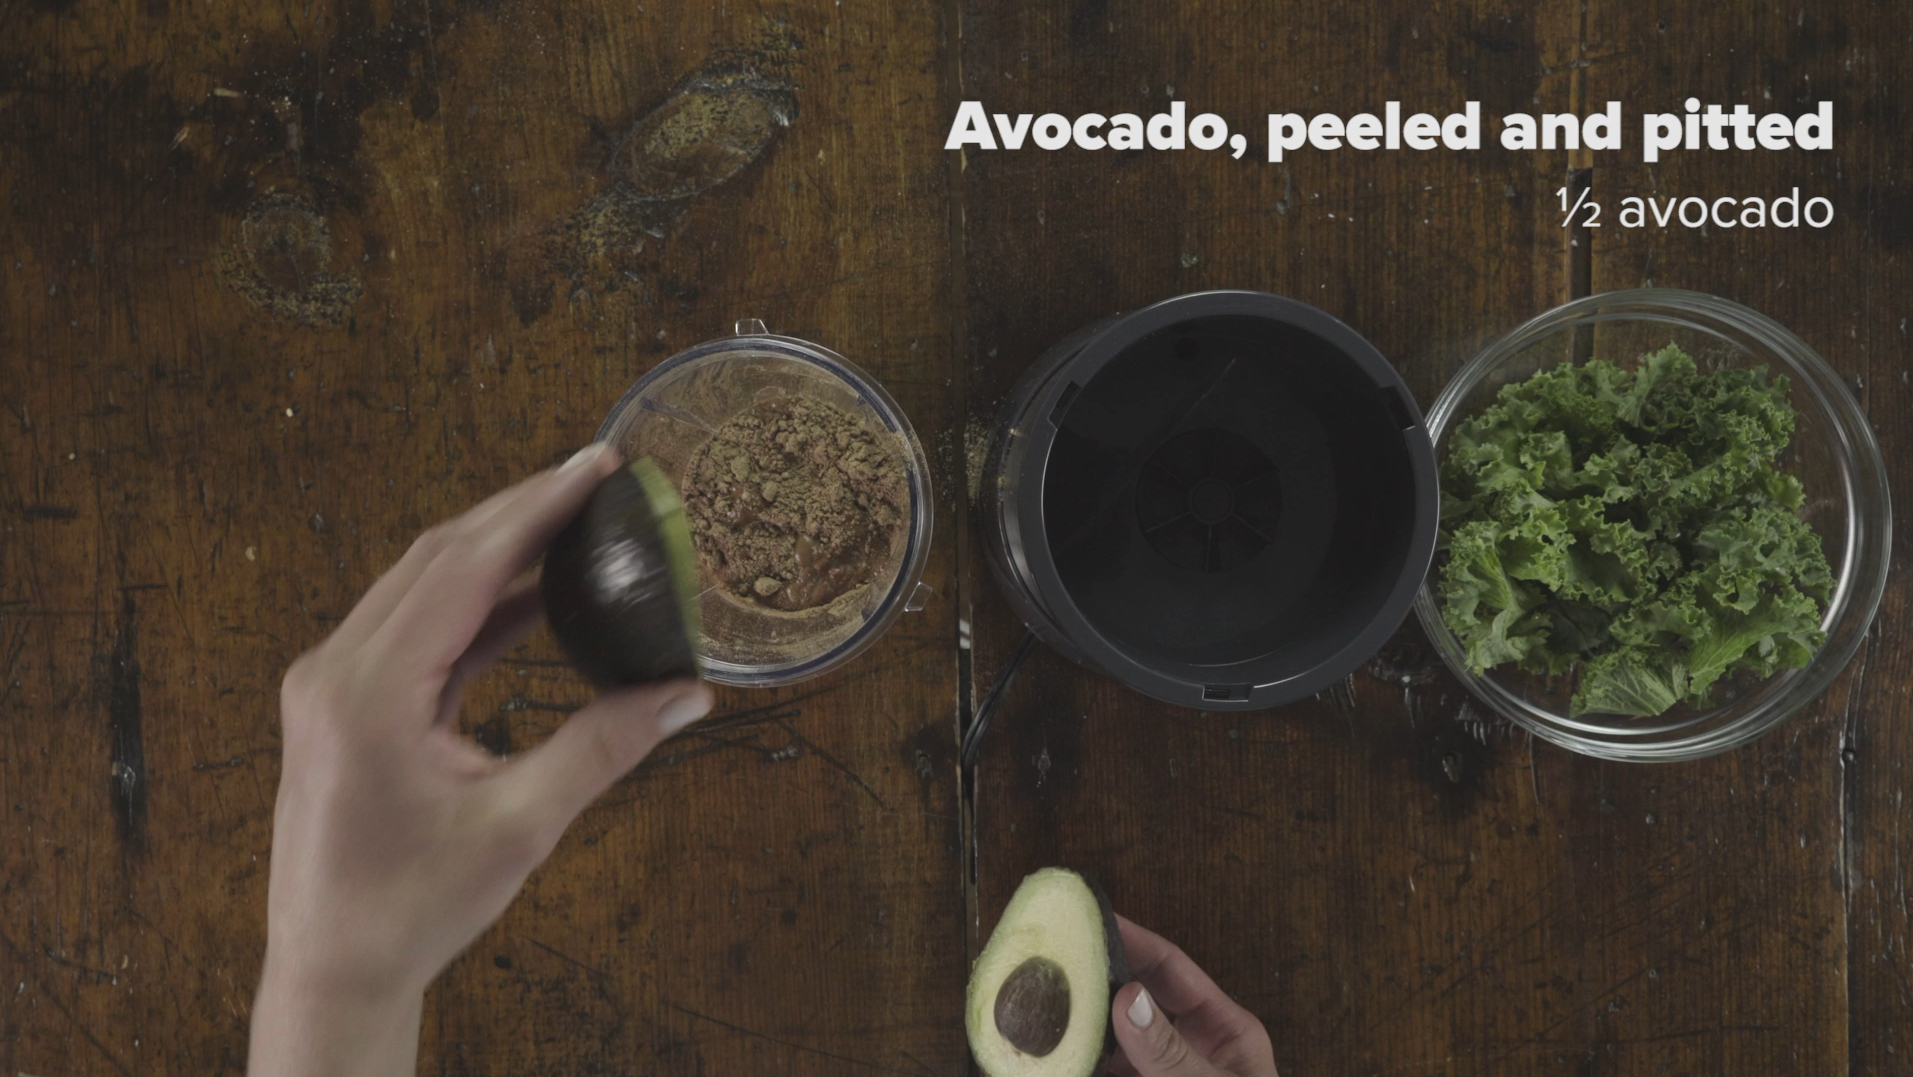 Step 5 Add Half Avocado Peeled and Pitted